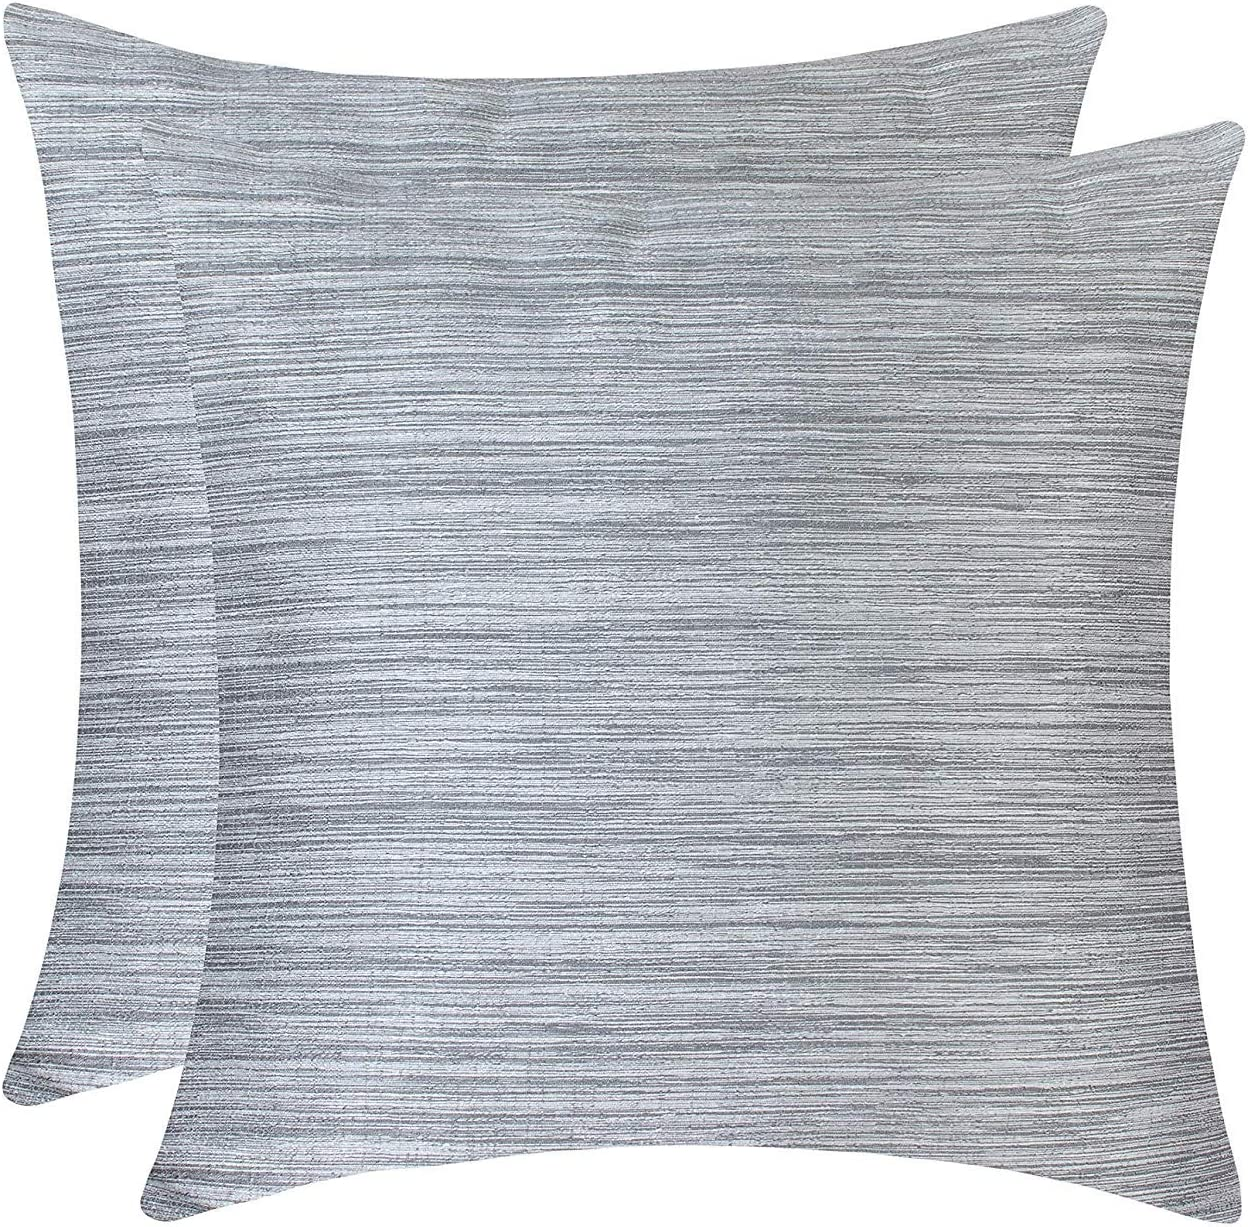 The White Petals Silver Gray Throw Pillow Covers for Sofa, Couch & Bed (16x16 inch, Pack of 2)